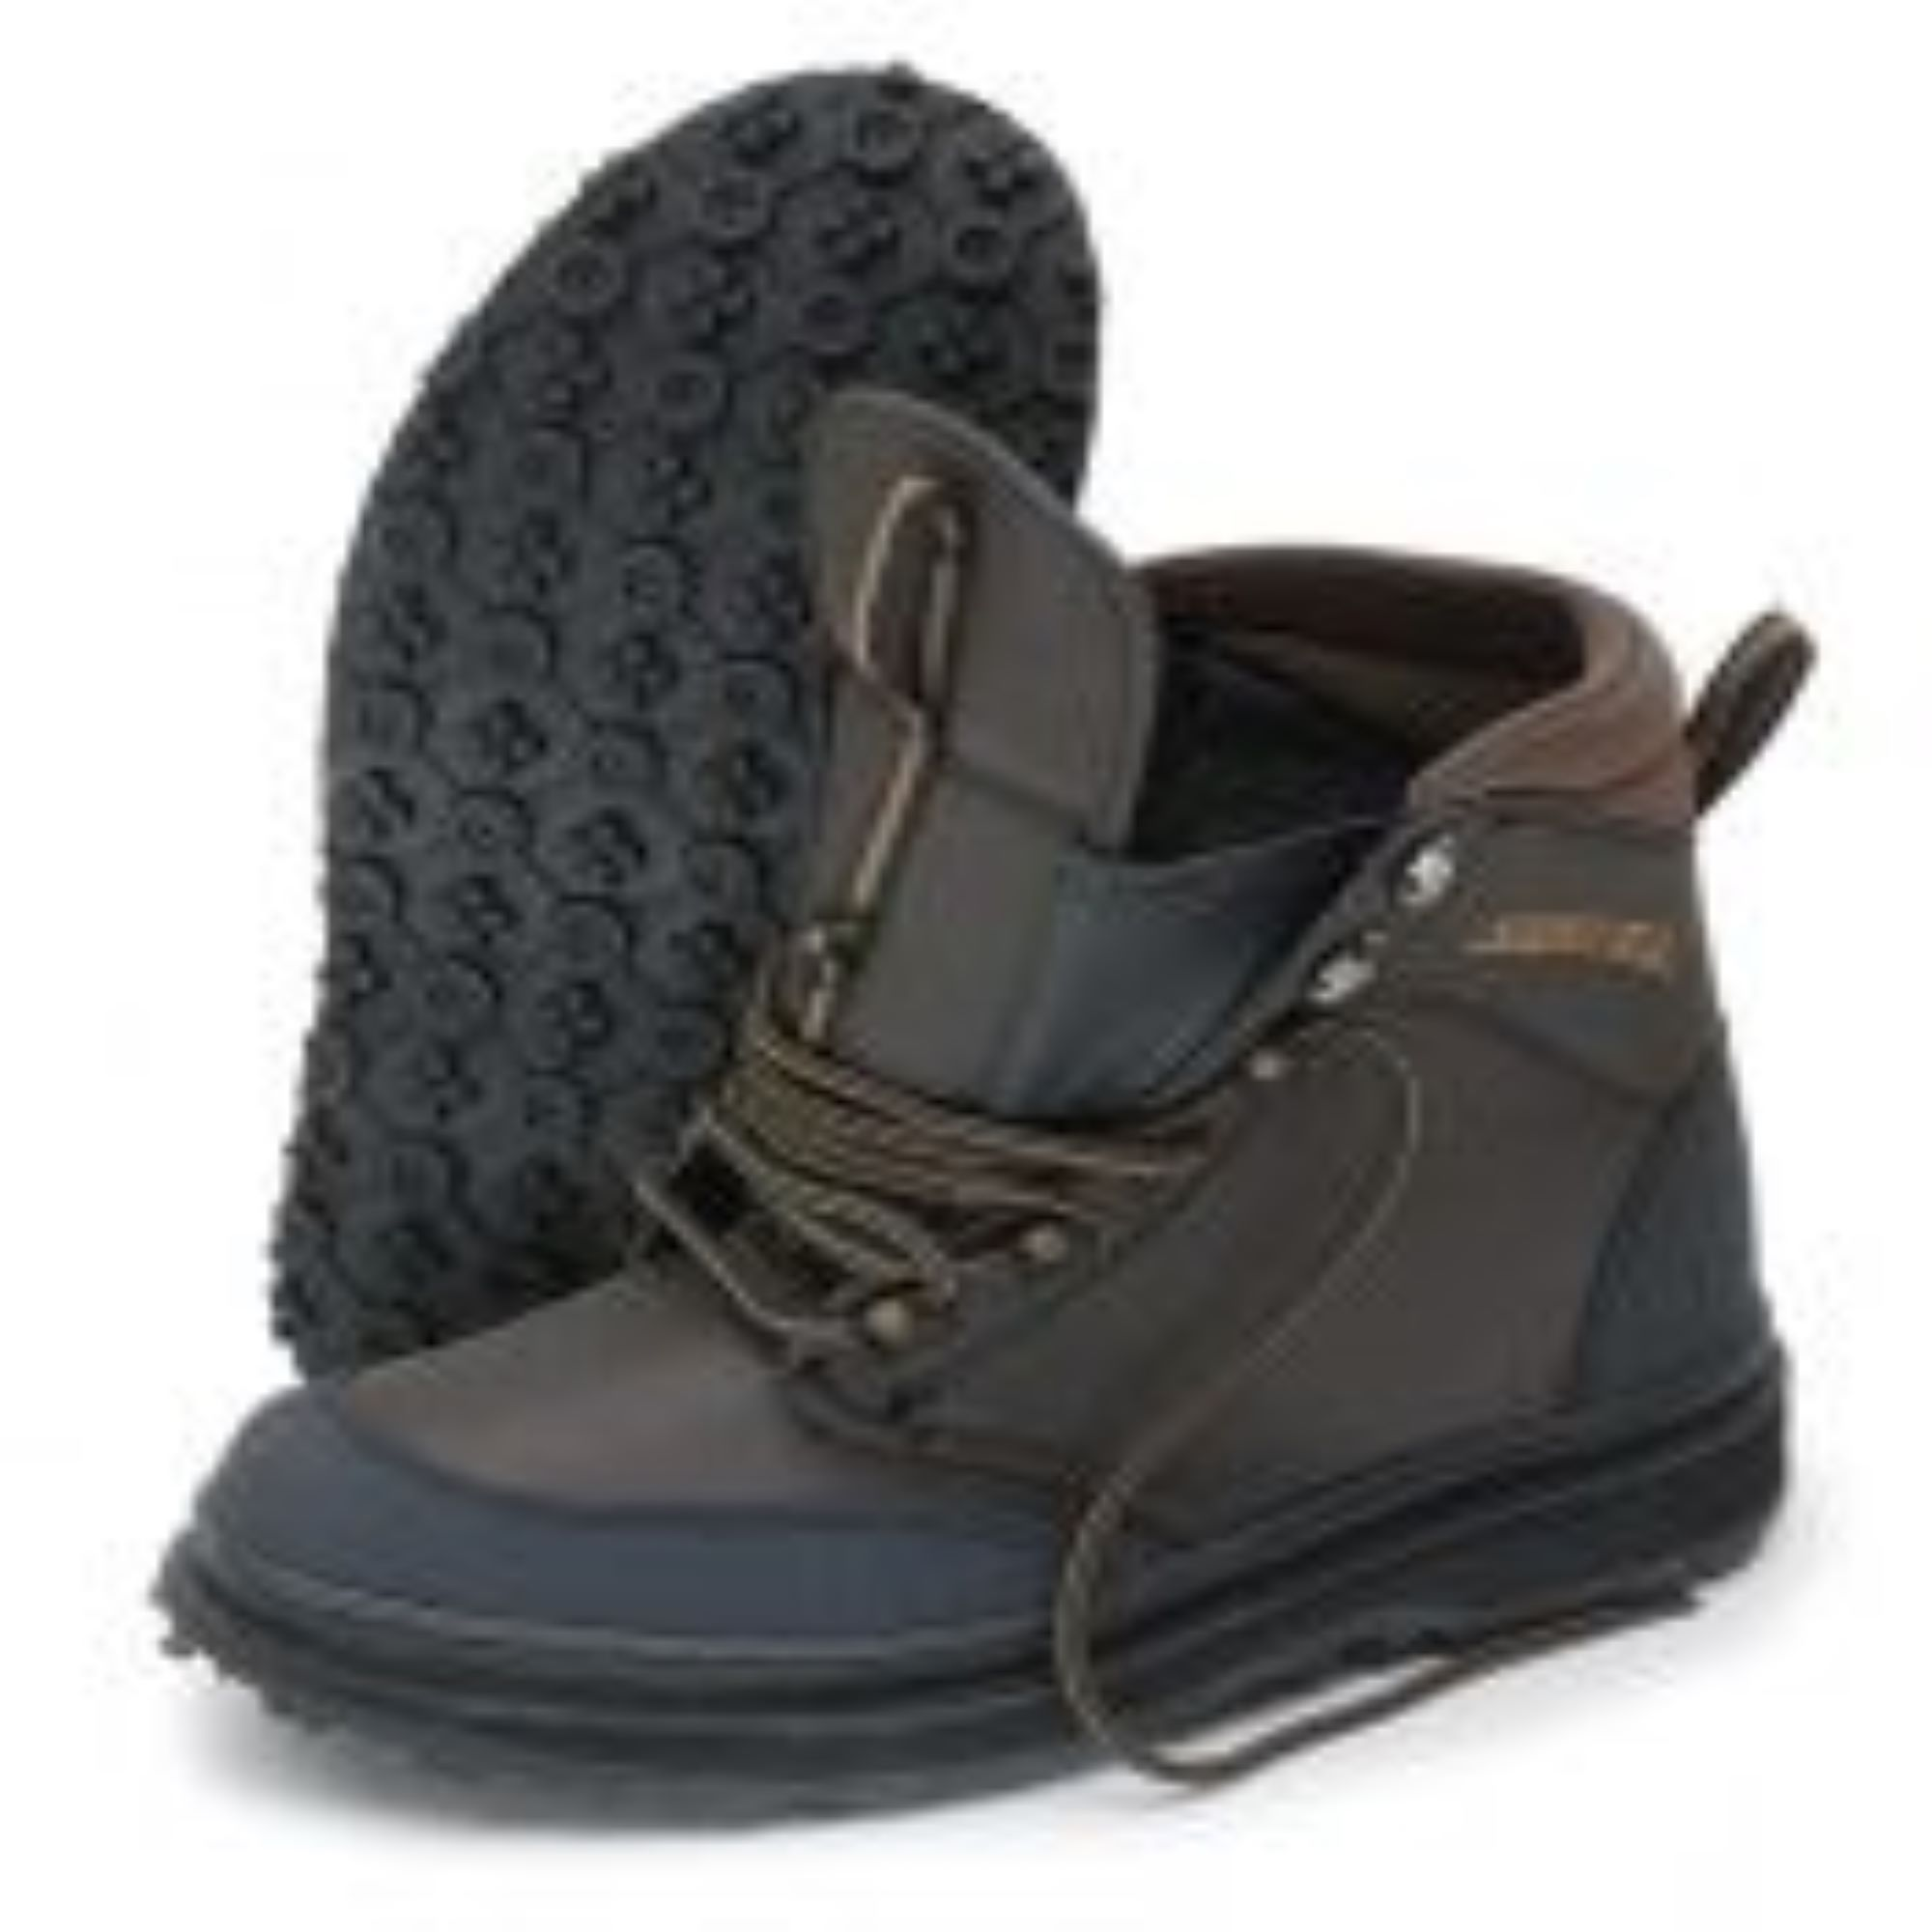 Keeper Wading Boots - Gummi Sole